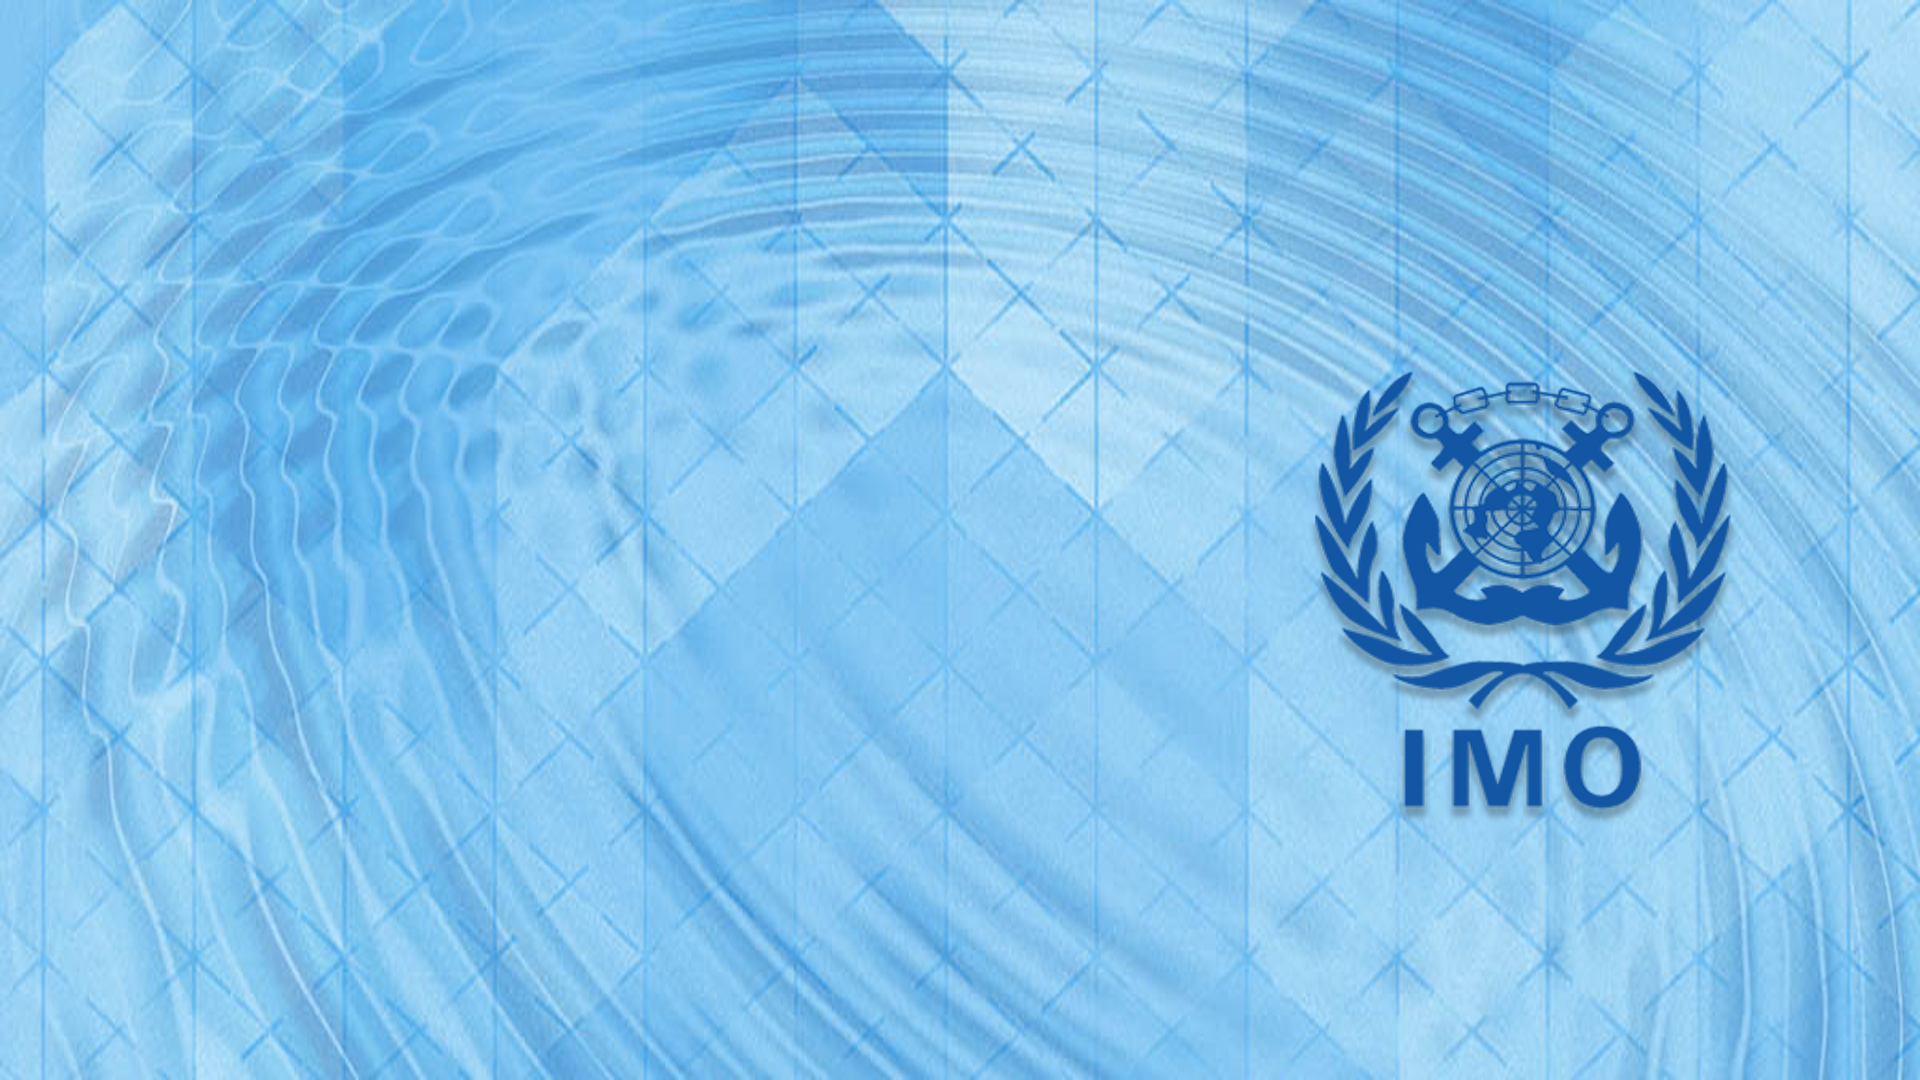 IMO Meeting Overview